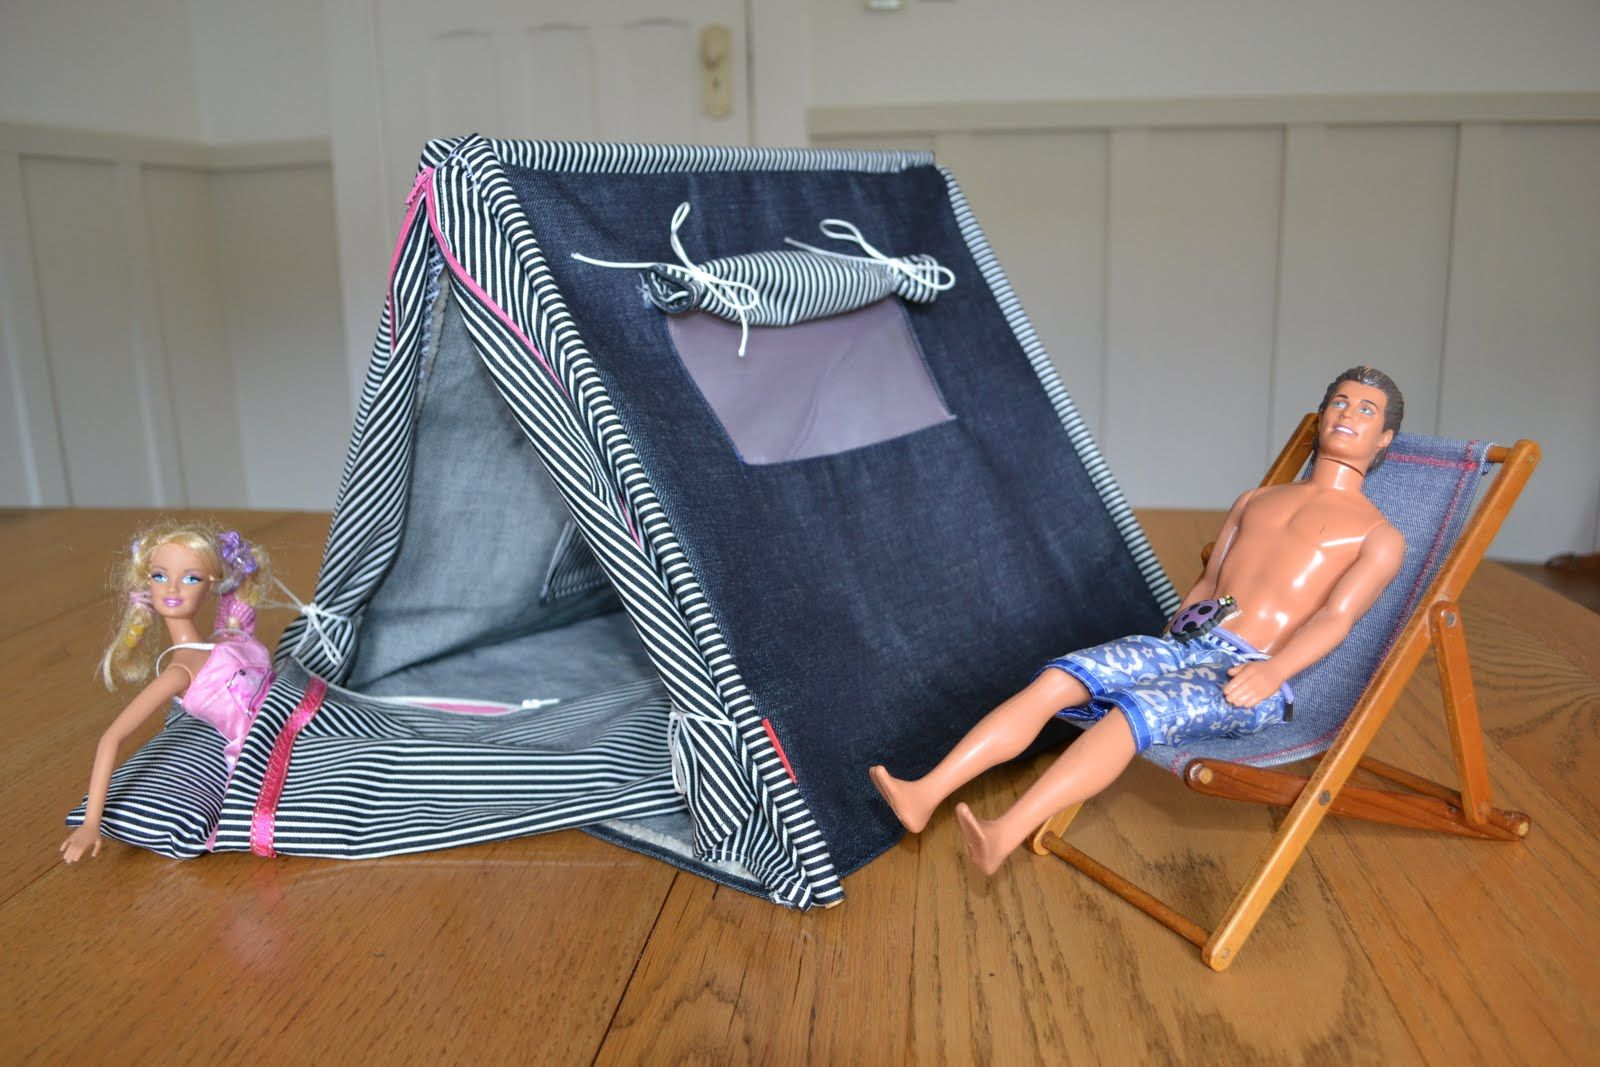 barbie bean bag chair white arm chairs homemade tent and sleeping bags furniture